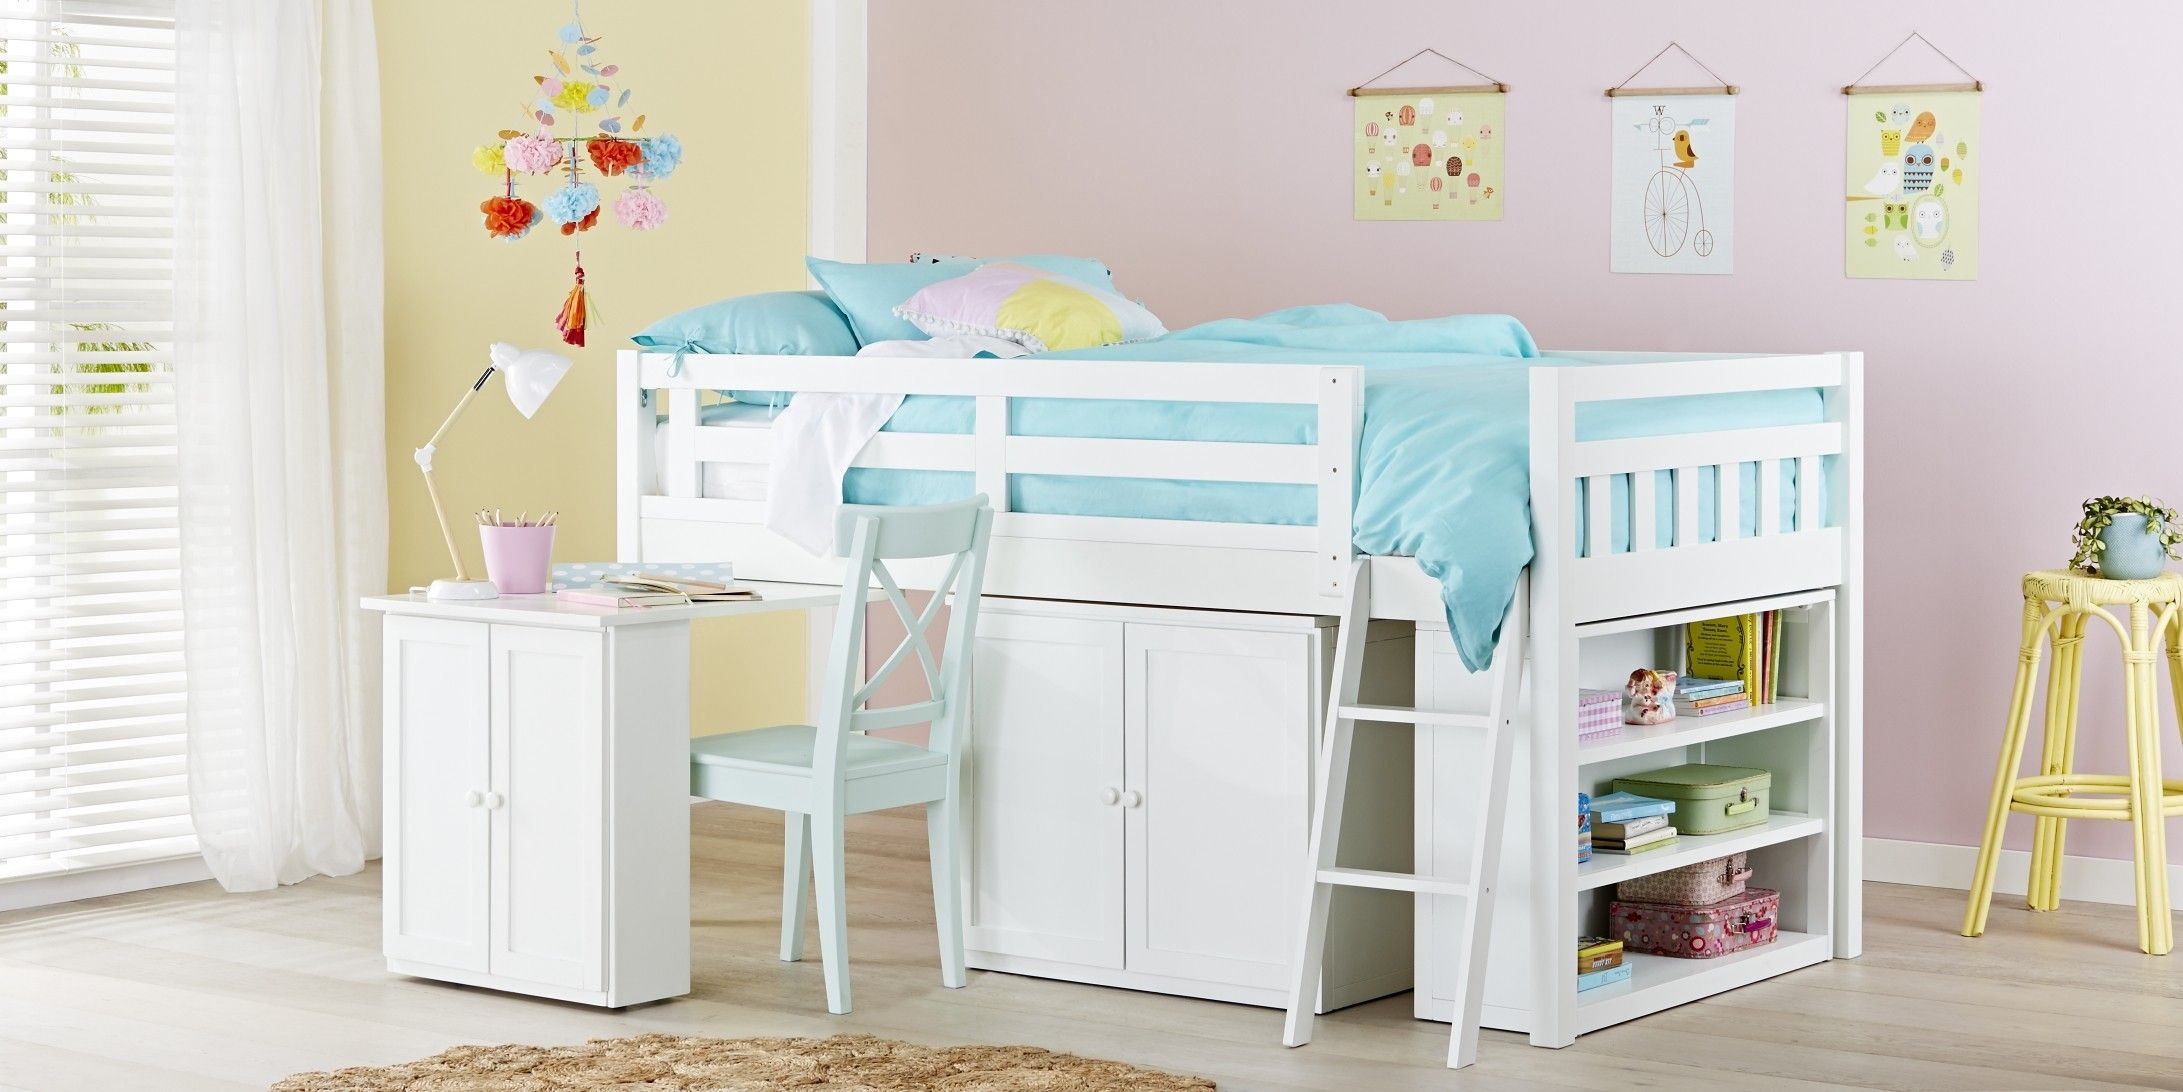 Baby amp kids kids furniture kids beds amp bedroom sets bunk beds - Aztec Cabin Bunk The Aztec Cabin Bunk Bed Is More Than Just A Modern Bed